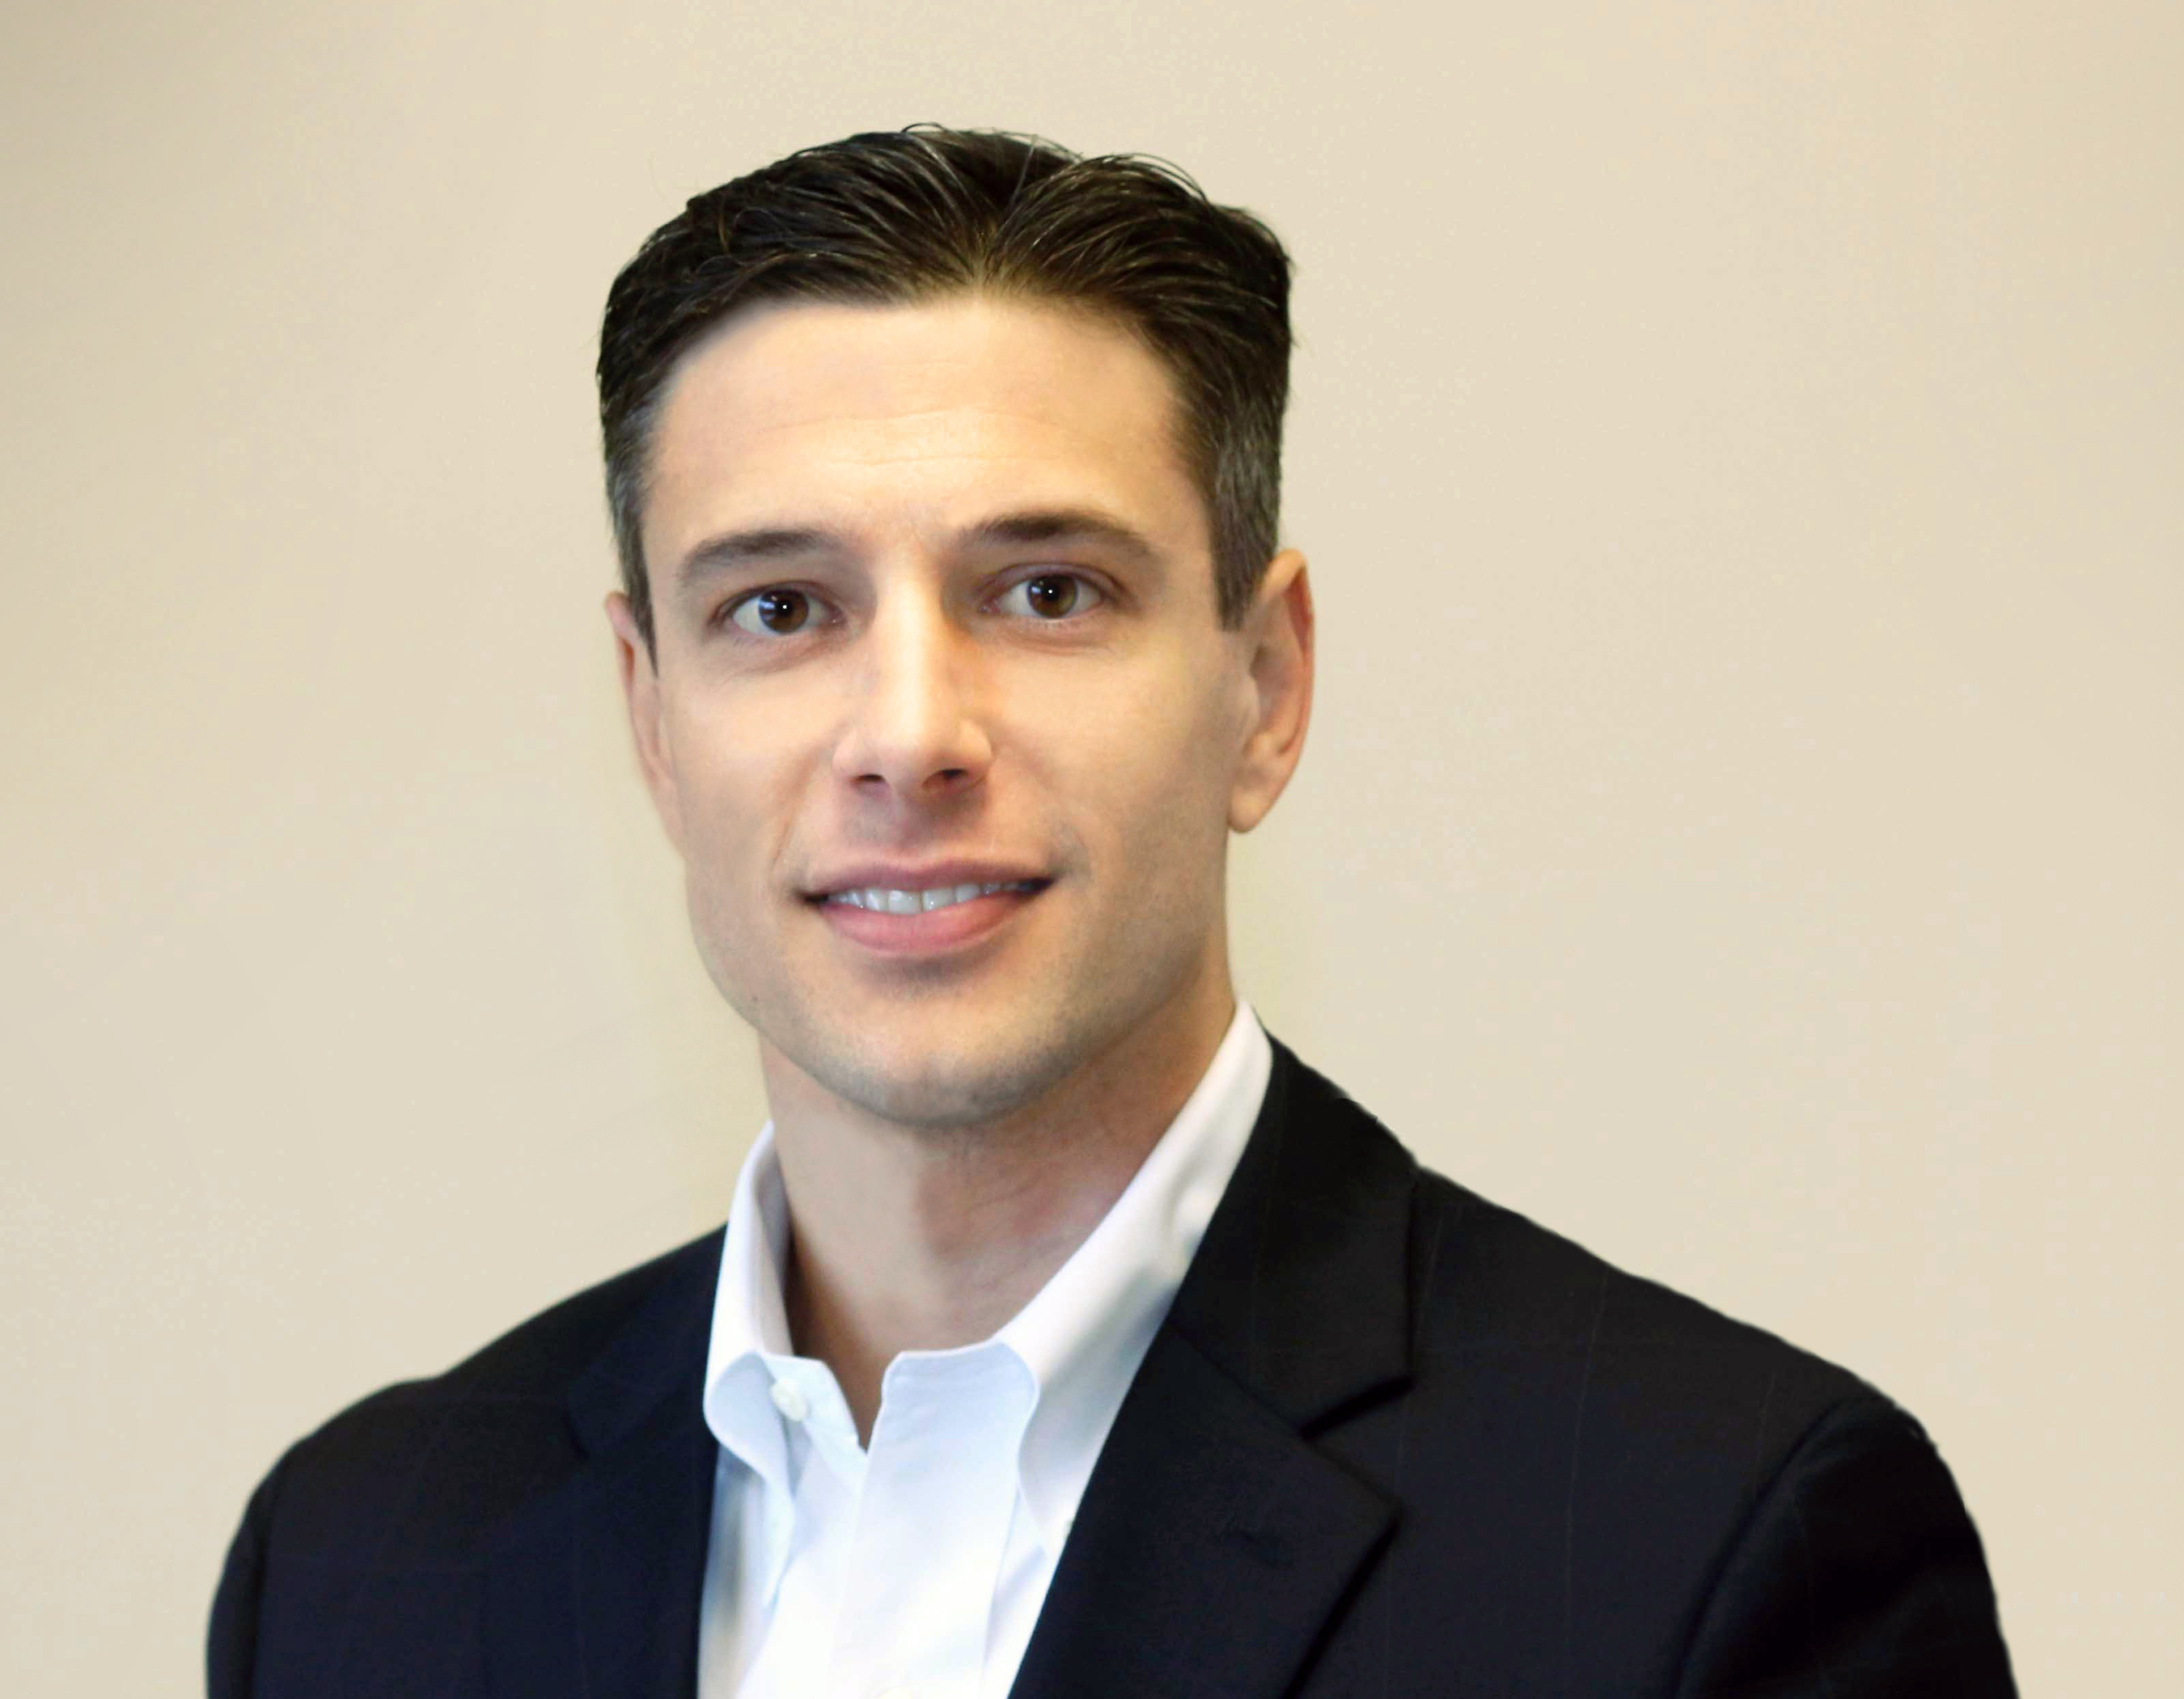 Kurt Angstadt, financial advisor Royersford PA